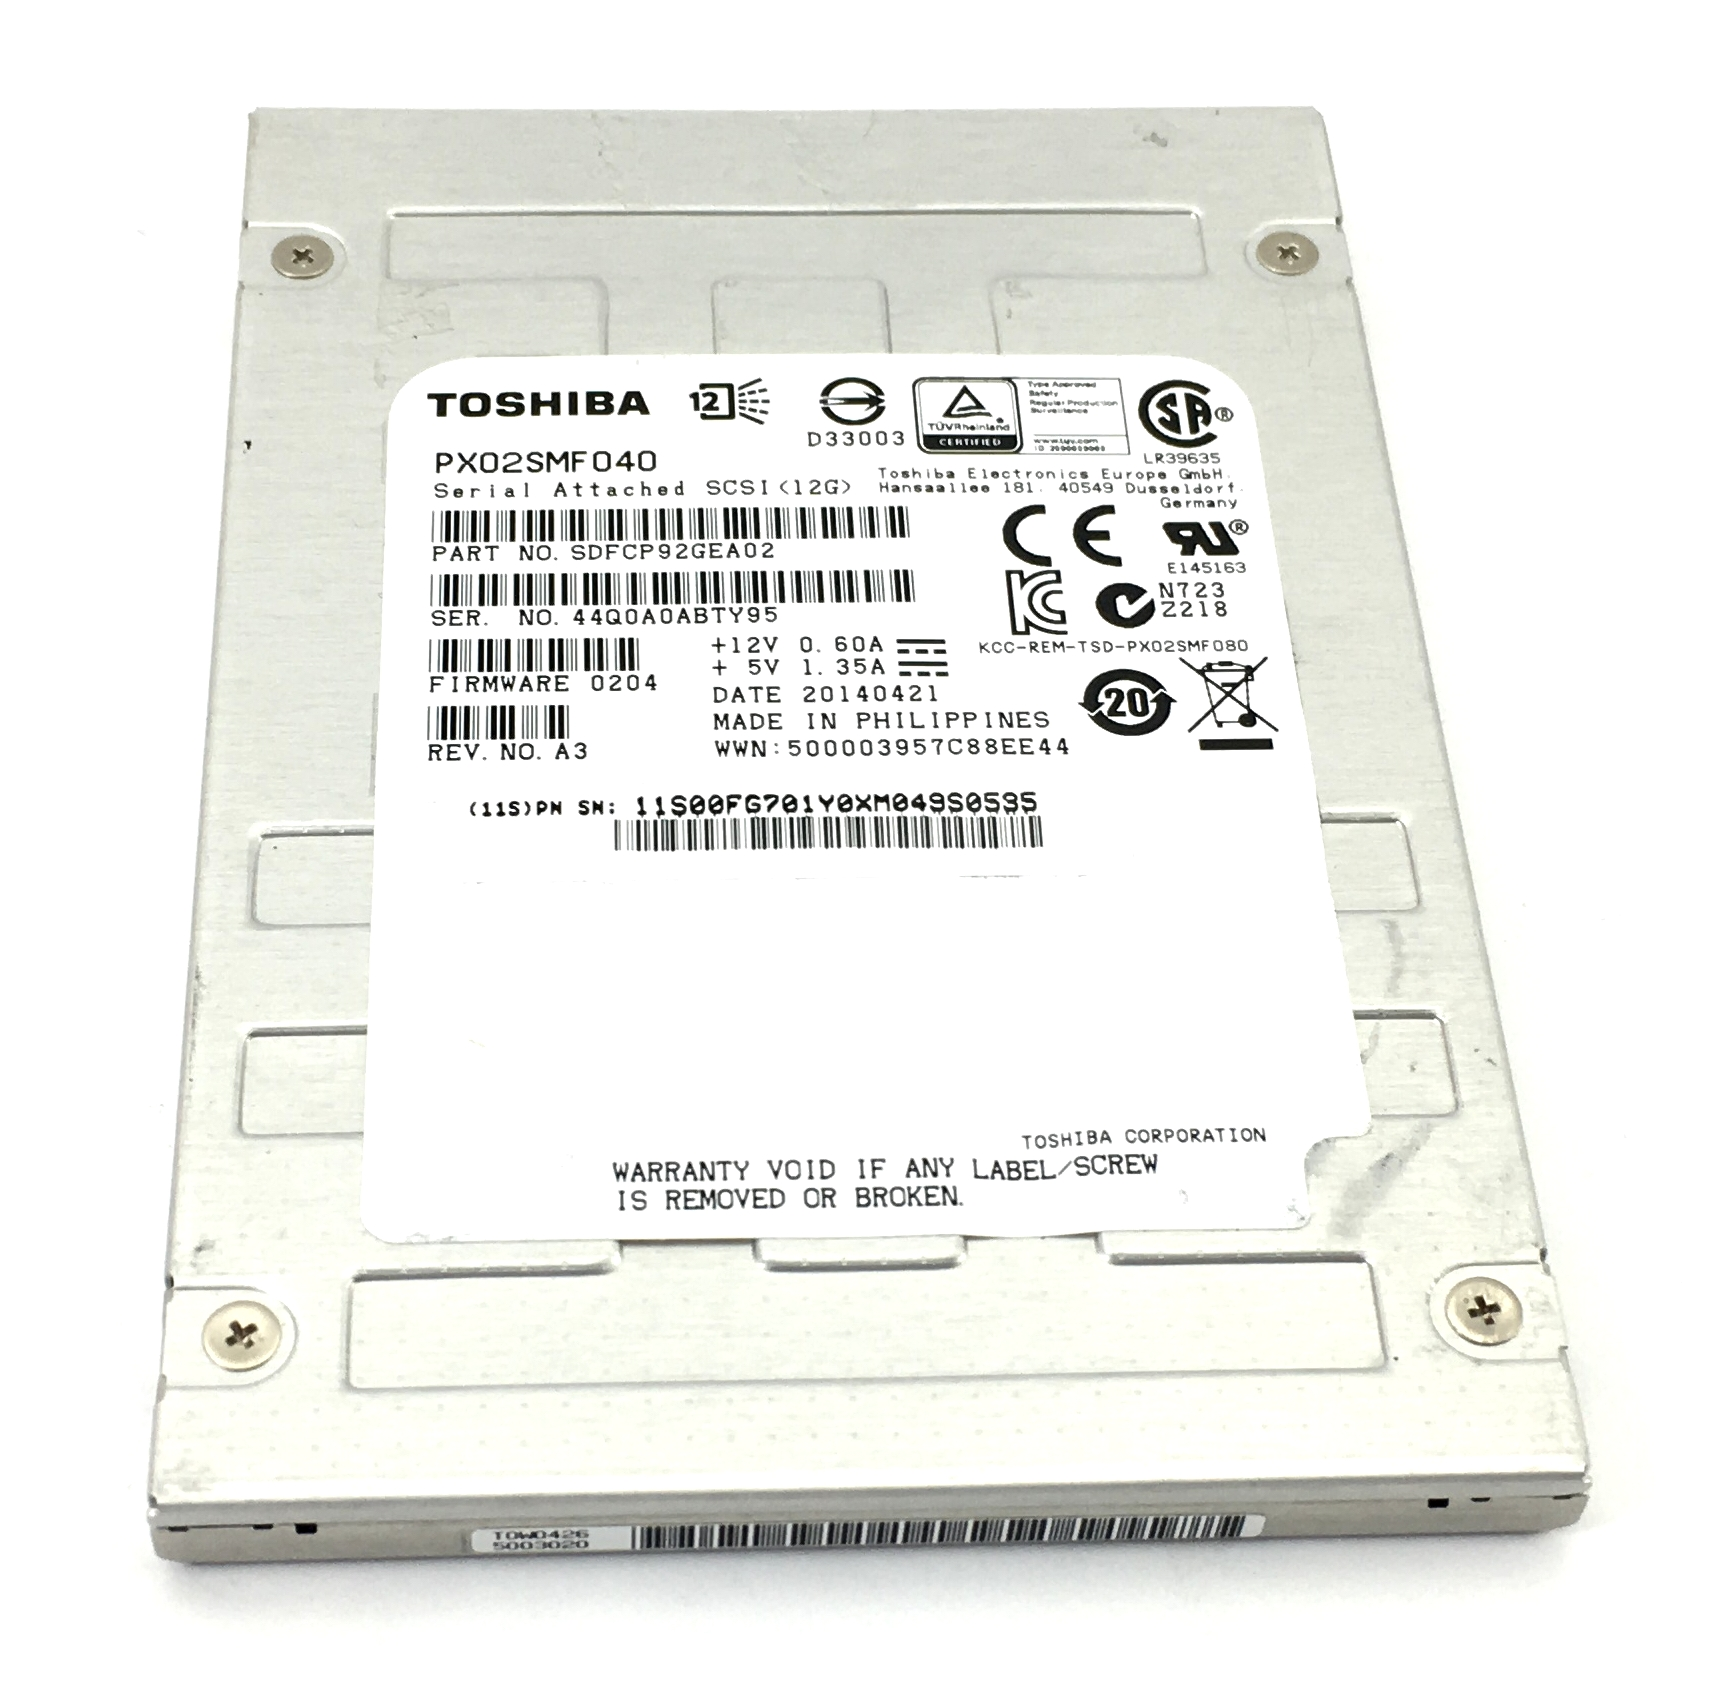 Toshiba PX02SMF040 400GB 12Gbps SAS EMLC Solid State Drive (SDFCP92GEA02)